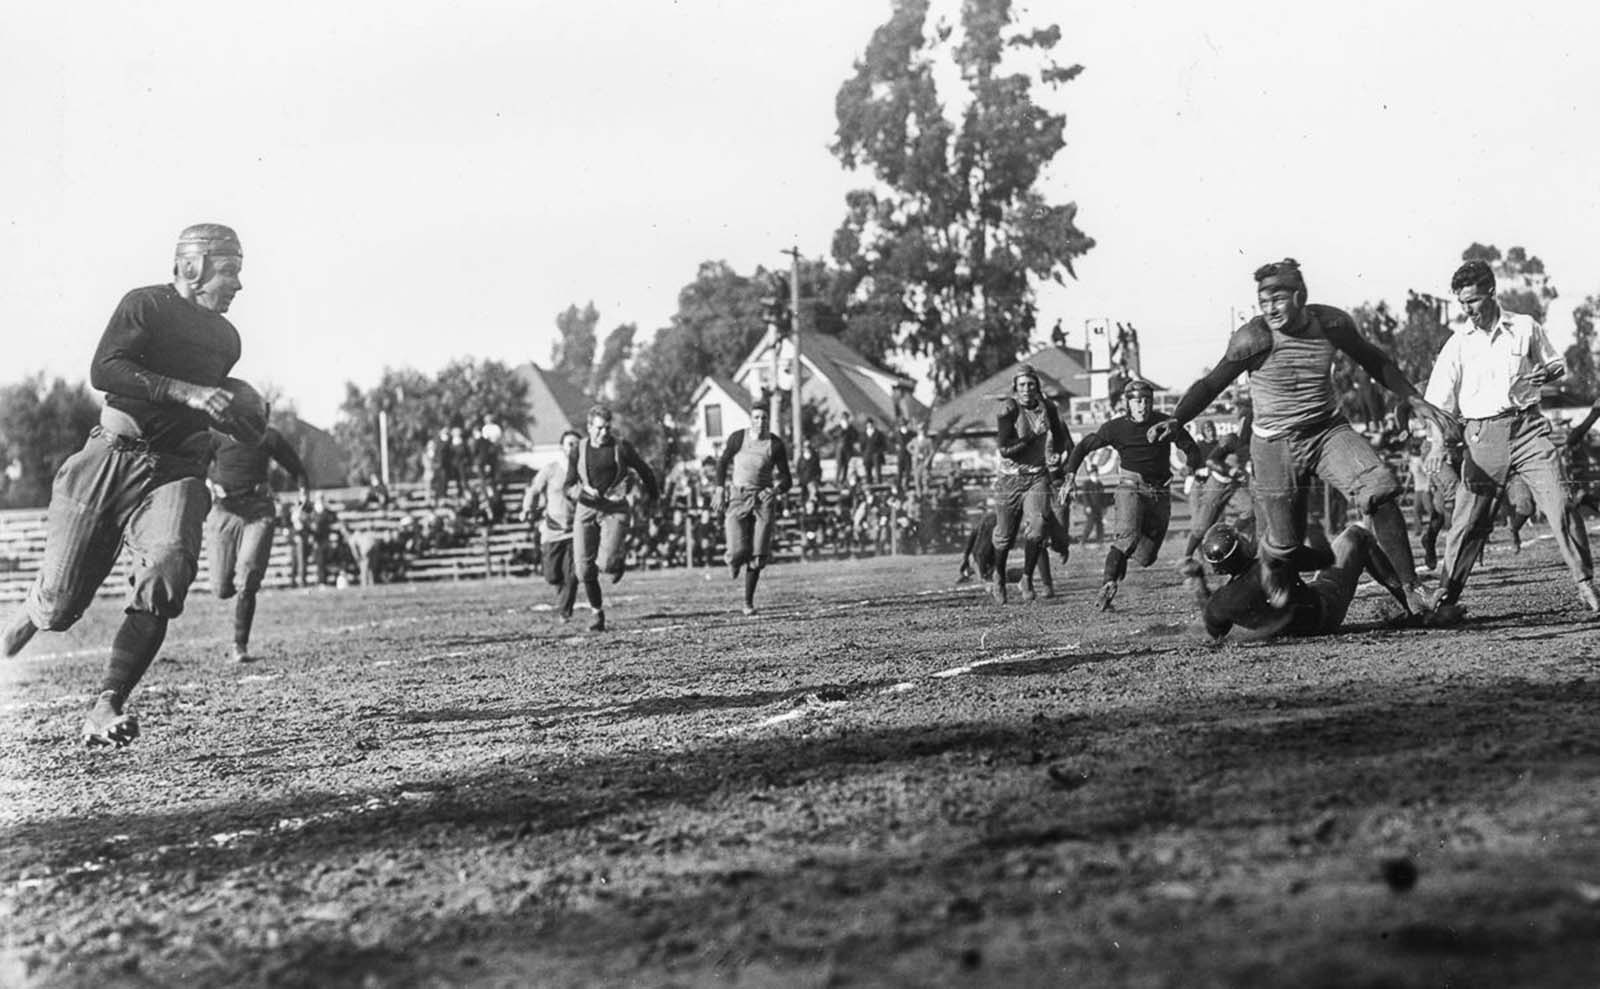 The University of Southern California Trojans football team run up field to make the play against the Saint Mary's College Gaels at the Los Angeles Memorial Coliseum. 1915.